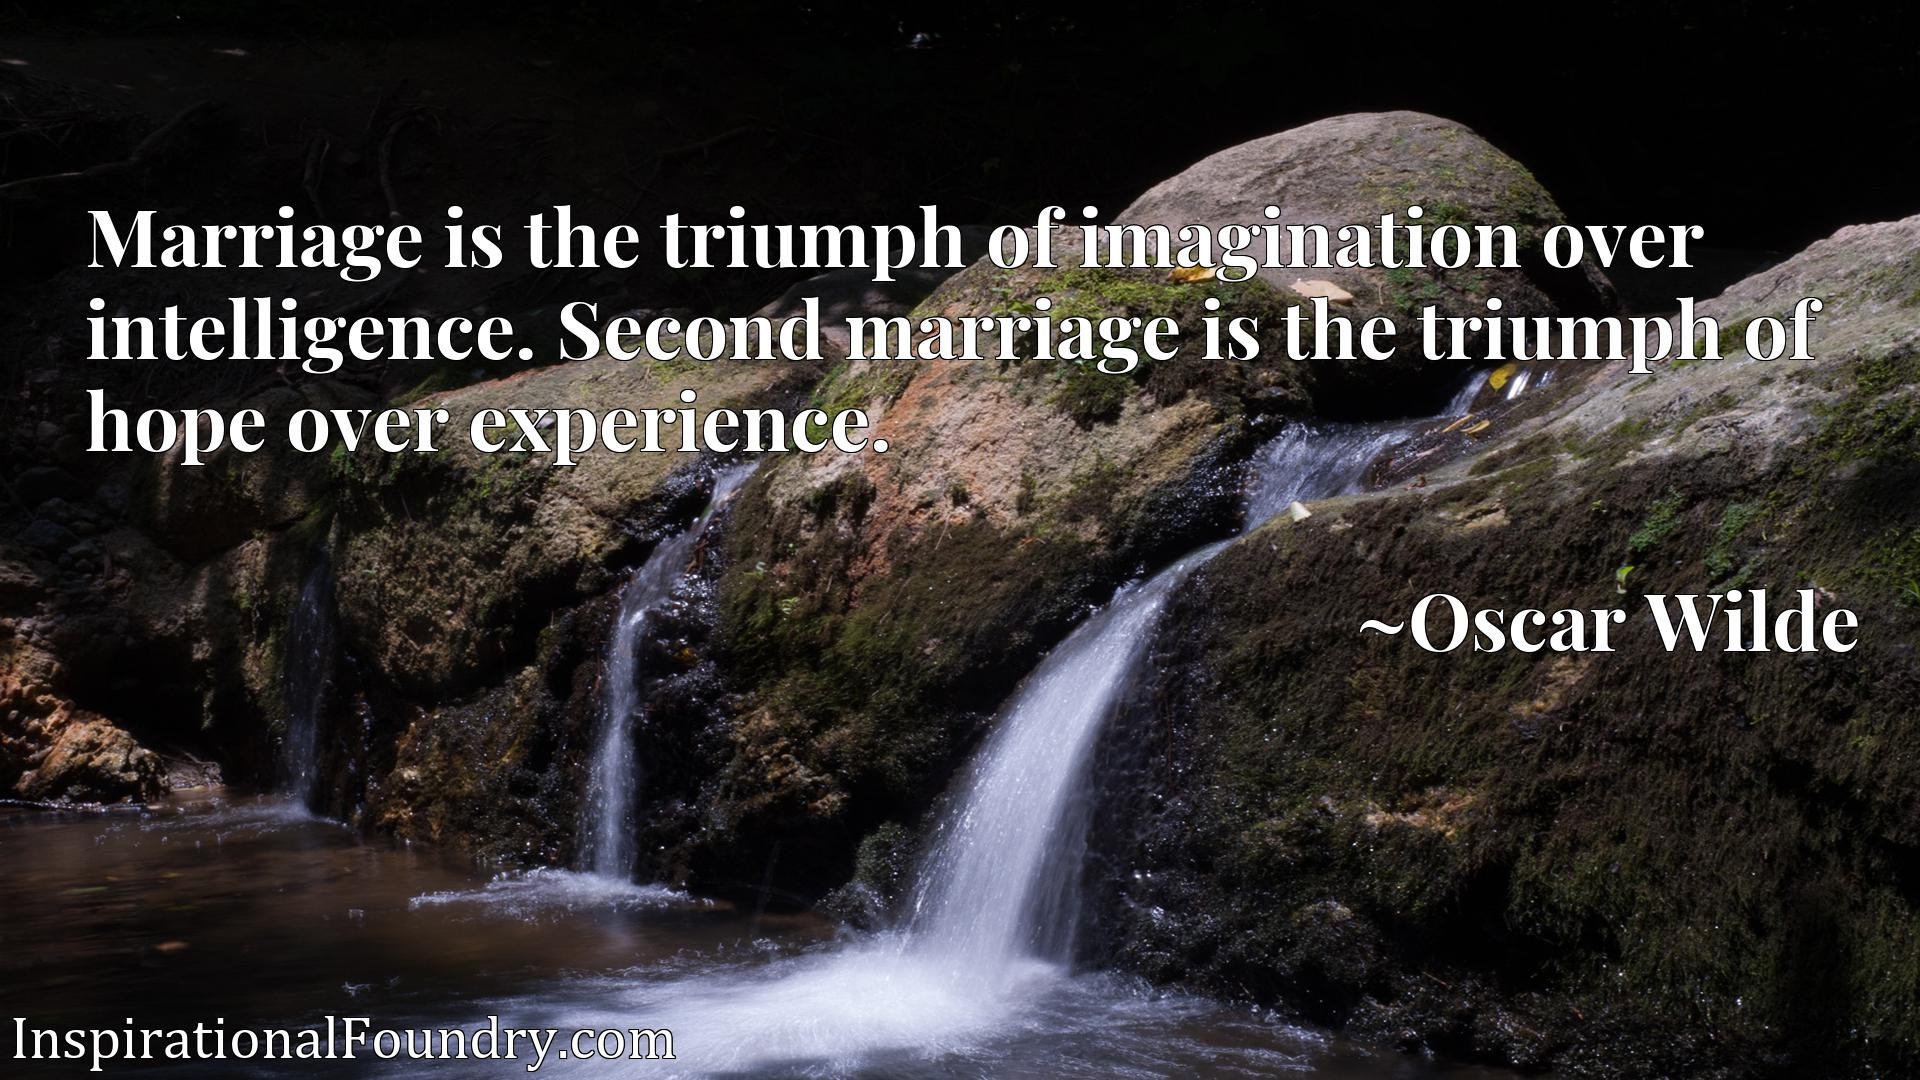 Marriage is the triumph of imagination over intelligence. Second marriage is the triumph of hope over experience.